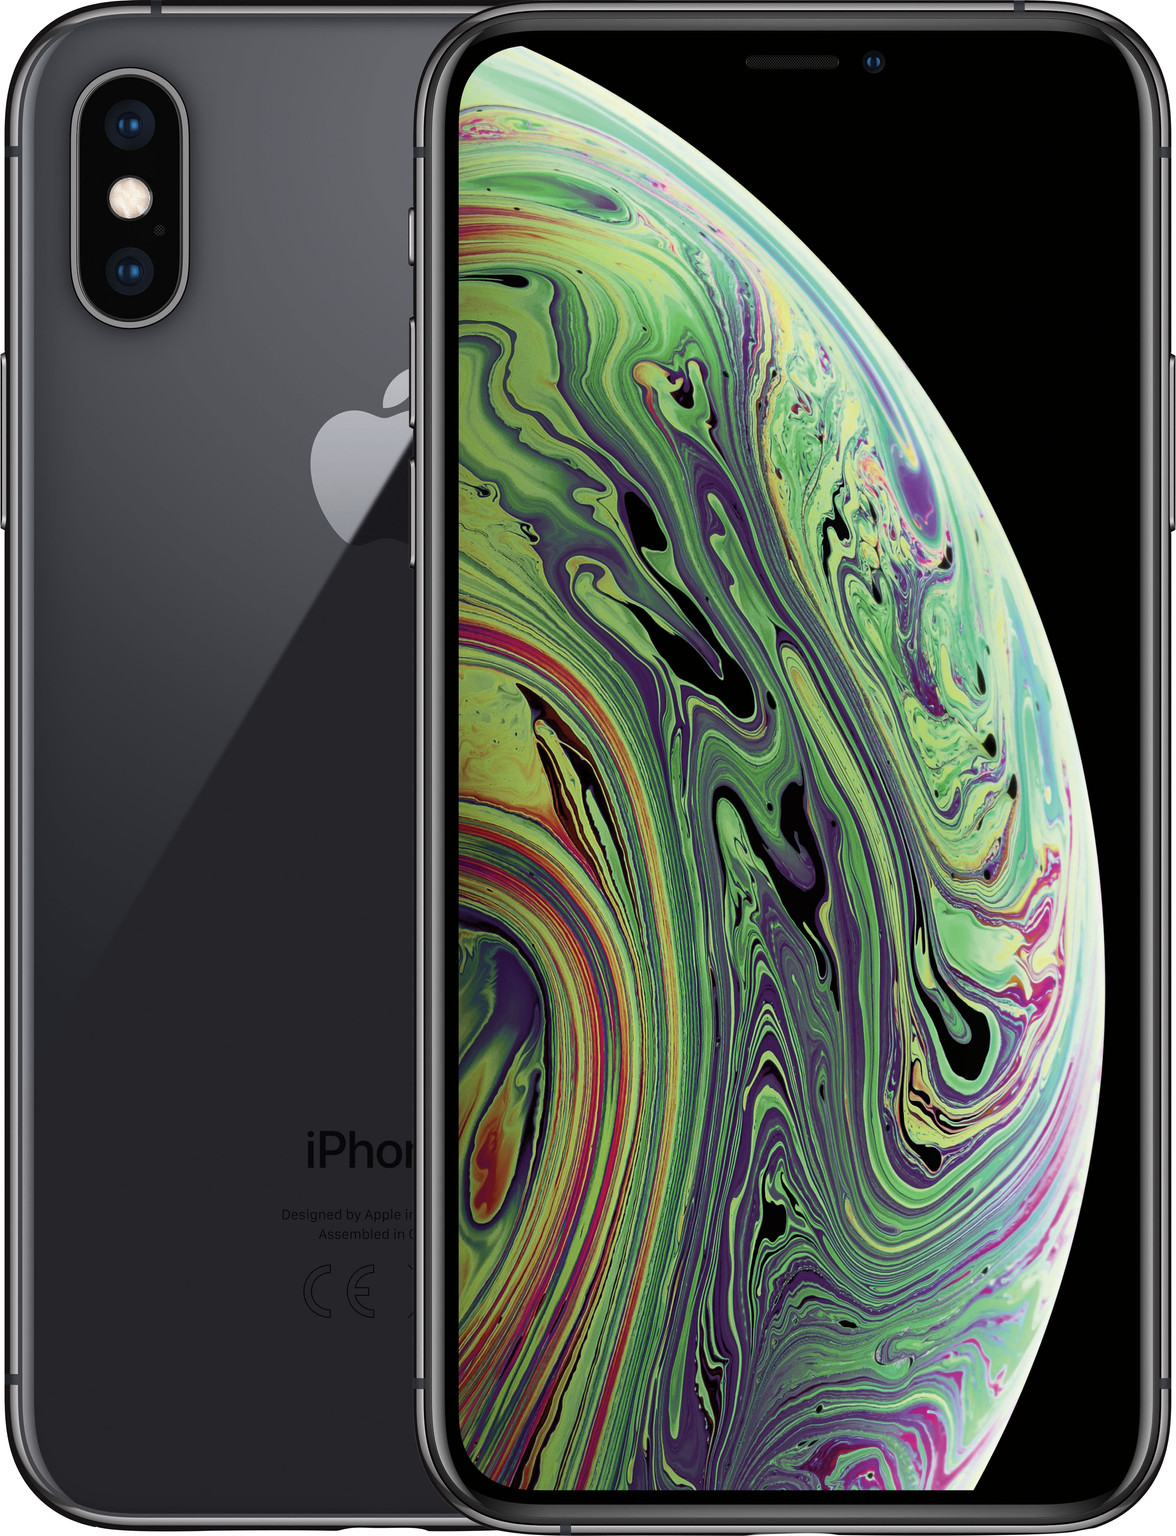 Apple iPhone XS - Provider Pre-Owned - 64GB - Space Gray